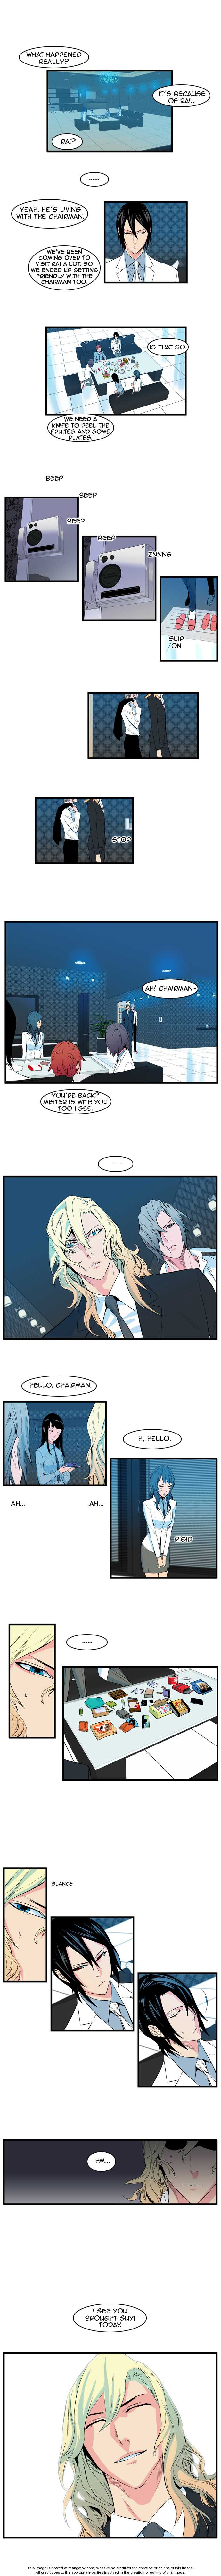 Noblesse 97 Page 2